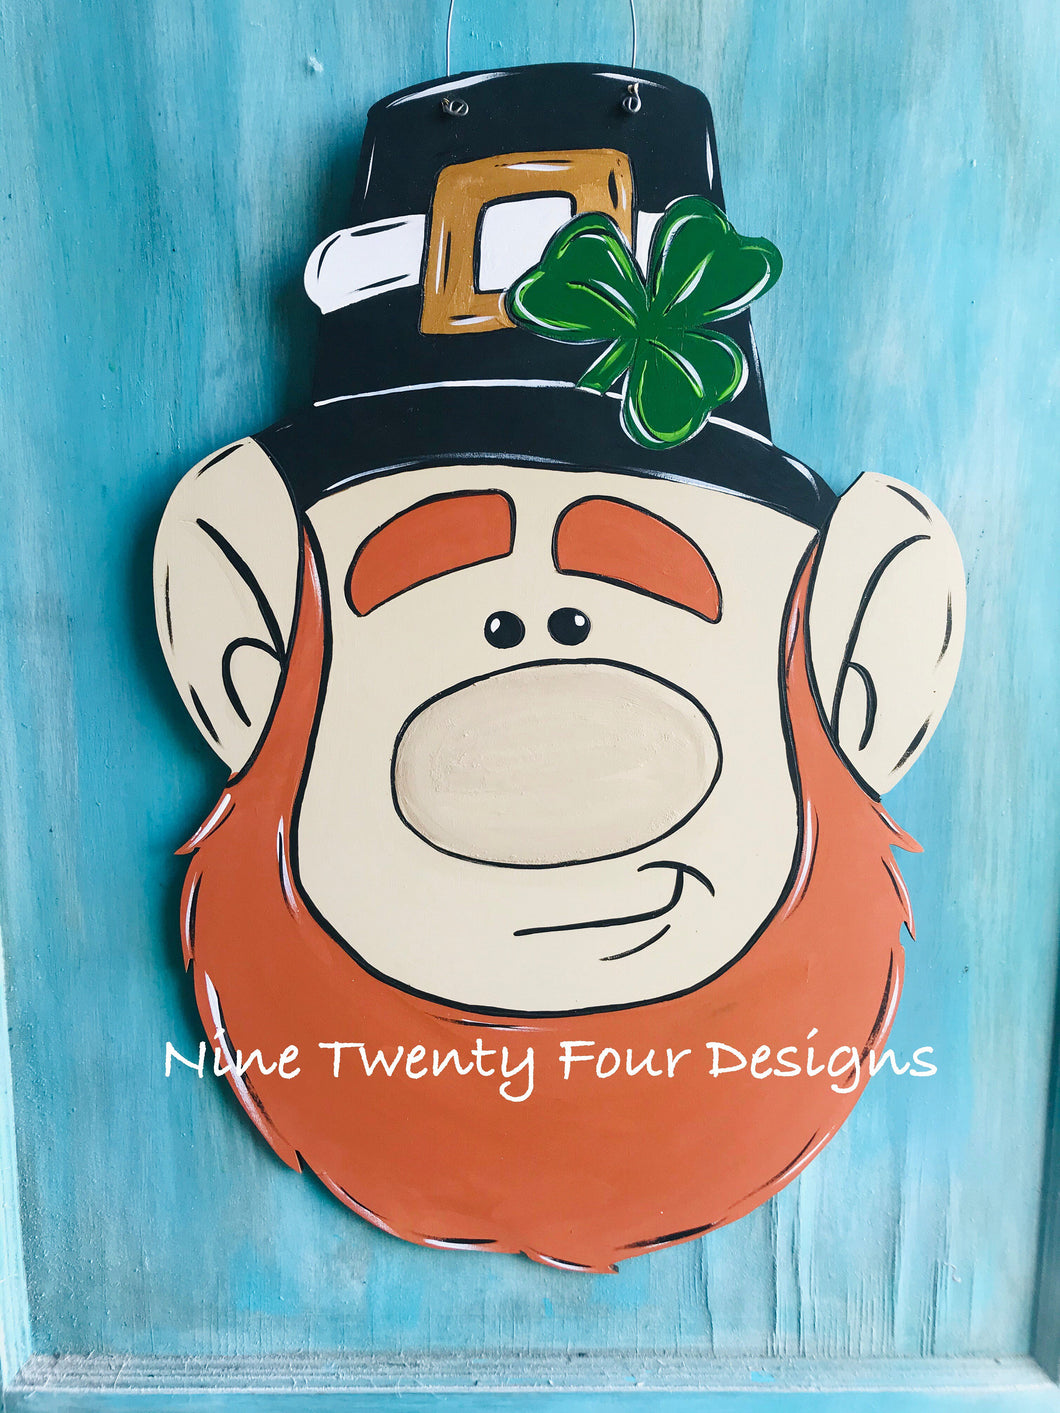 Leprechaun, Leprechaun door hanger, st patty door hanger, st pattys day, st Patrick's day, holiday decor